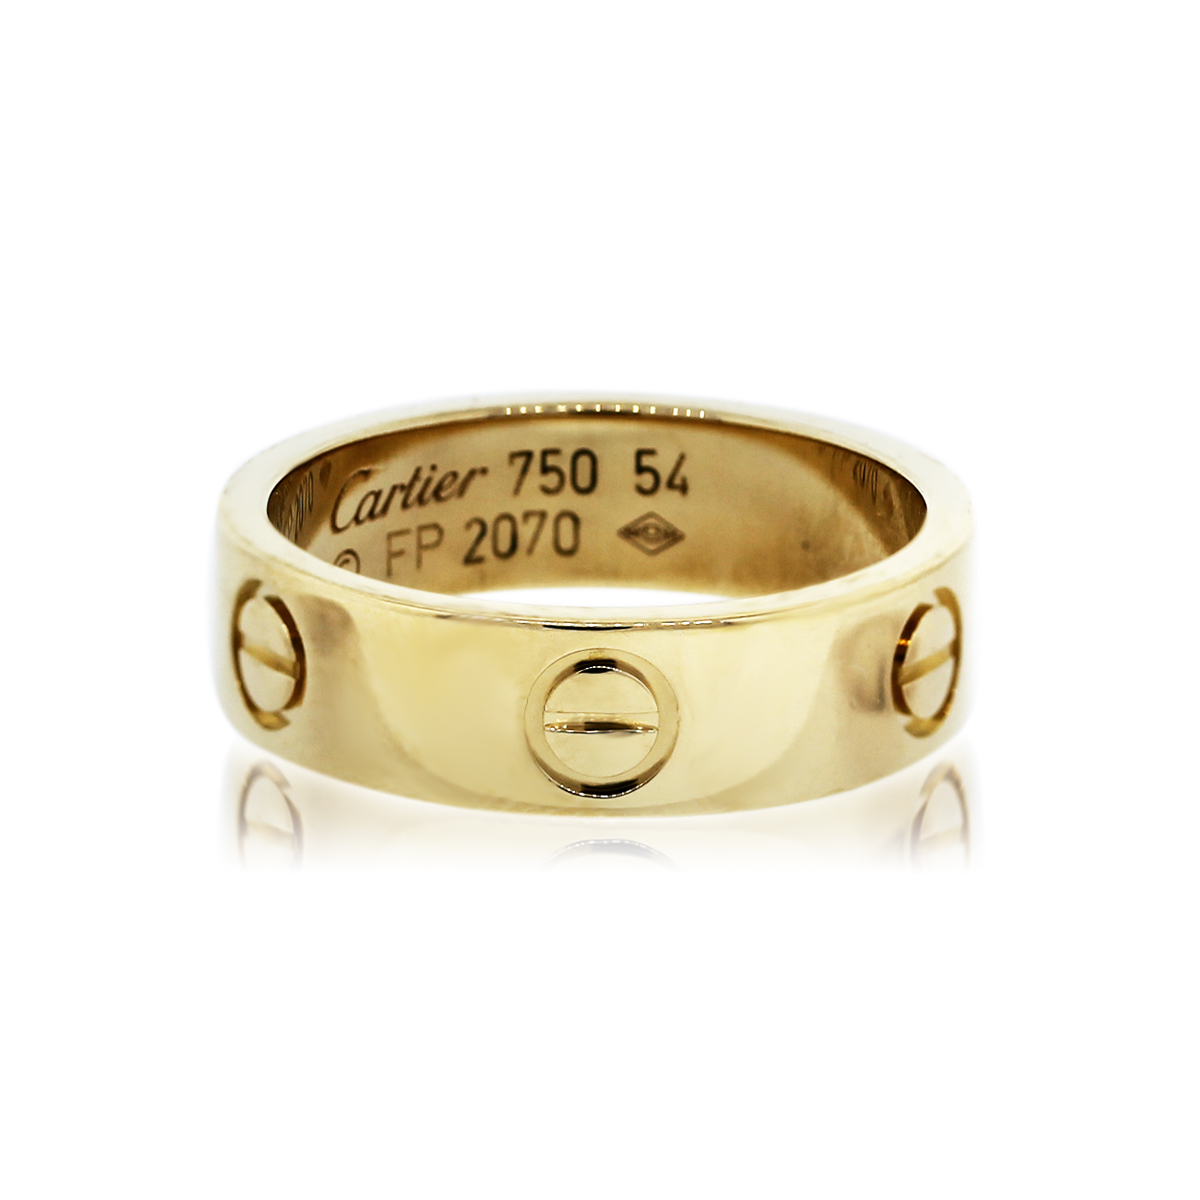 You are Viewing this Yellow Gold Cartier Love Ring!